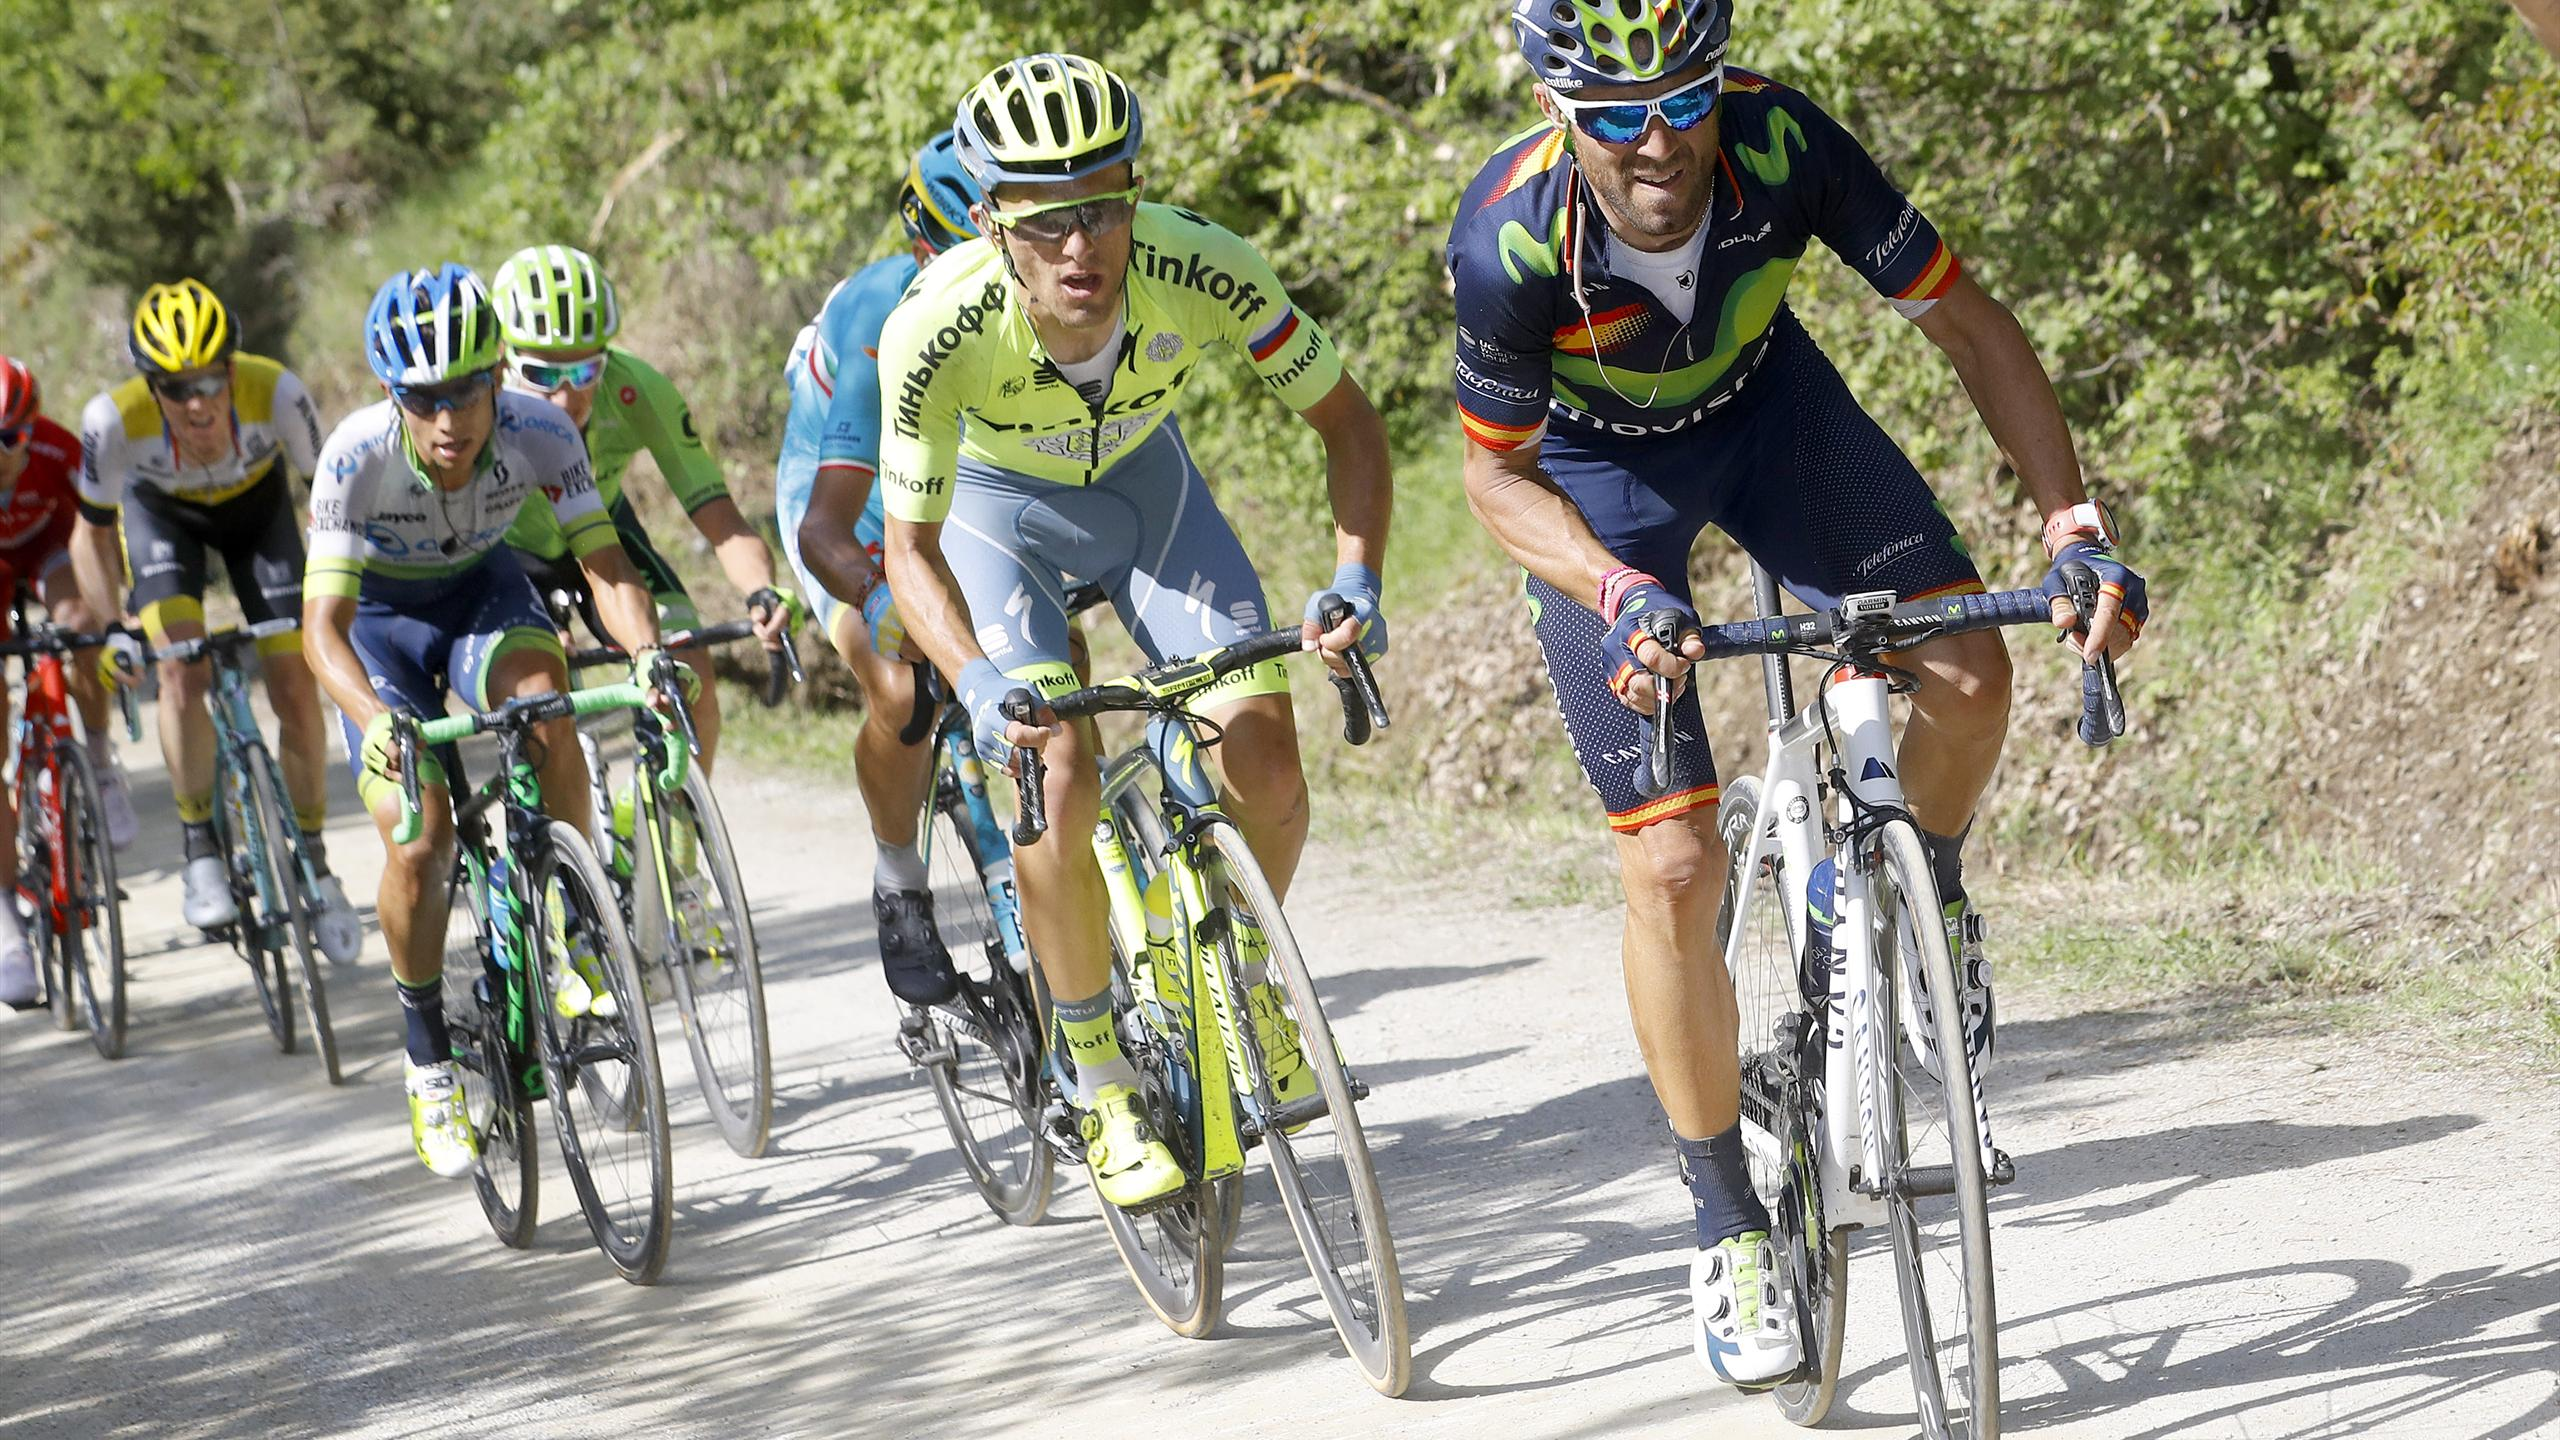 Sutherland not surprised by Movistar teammate Valverde's Giro GC contention